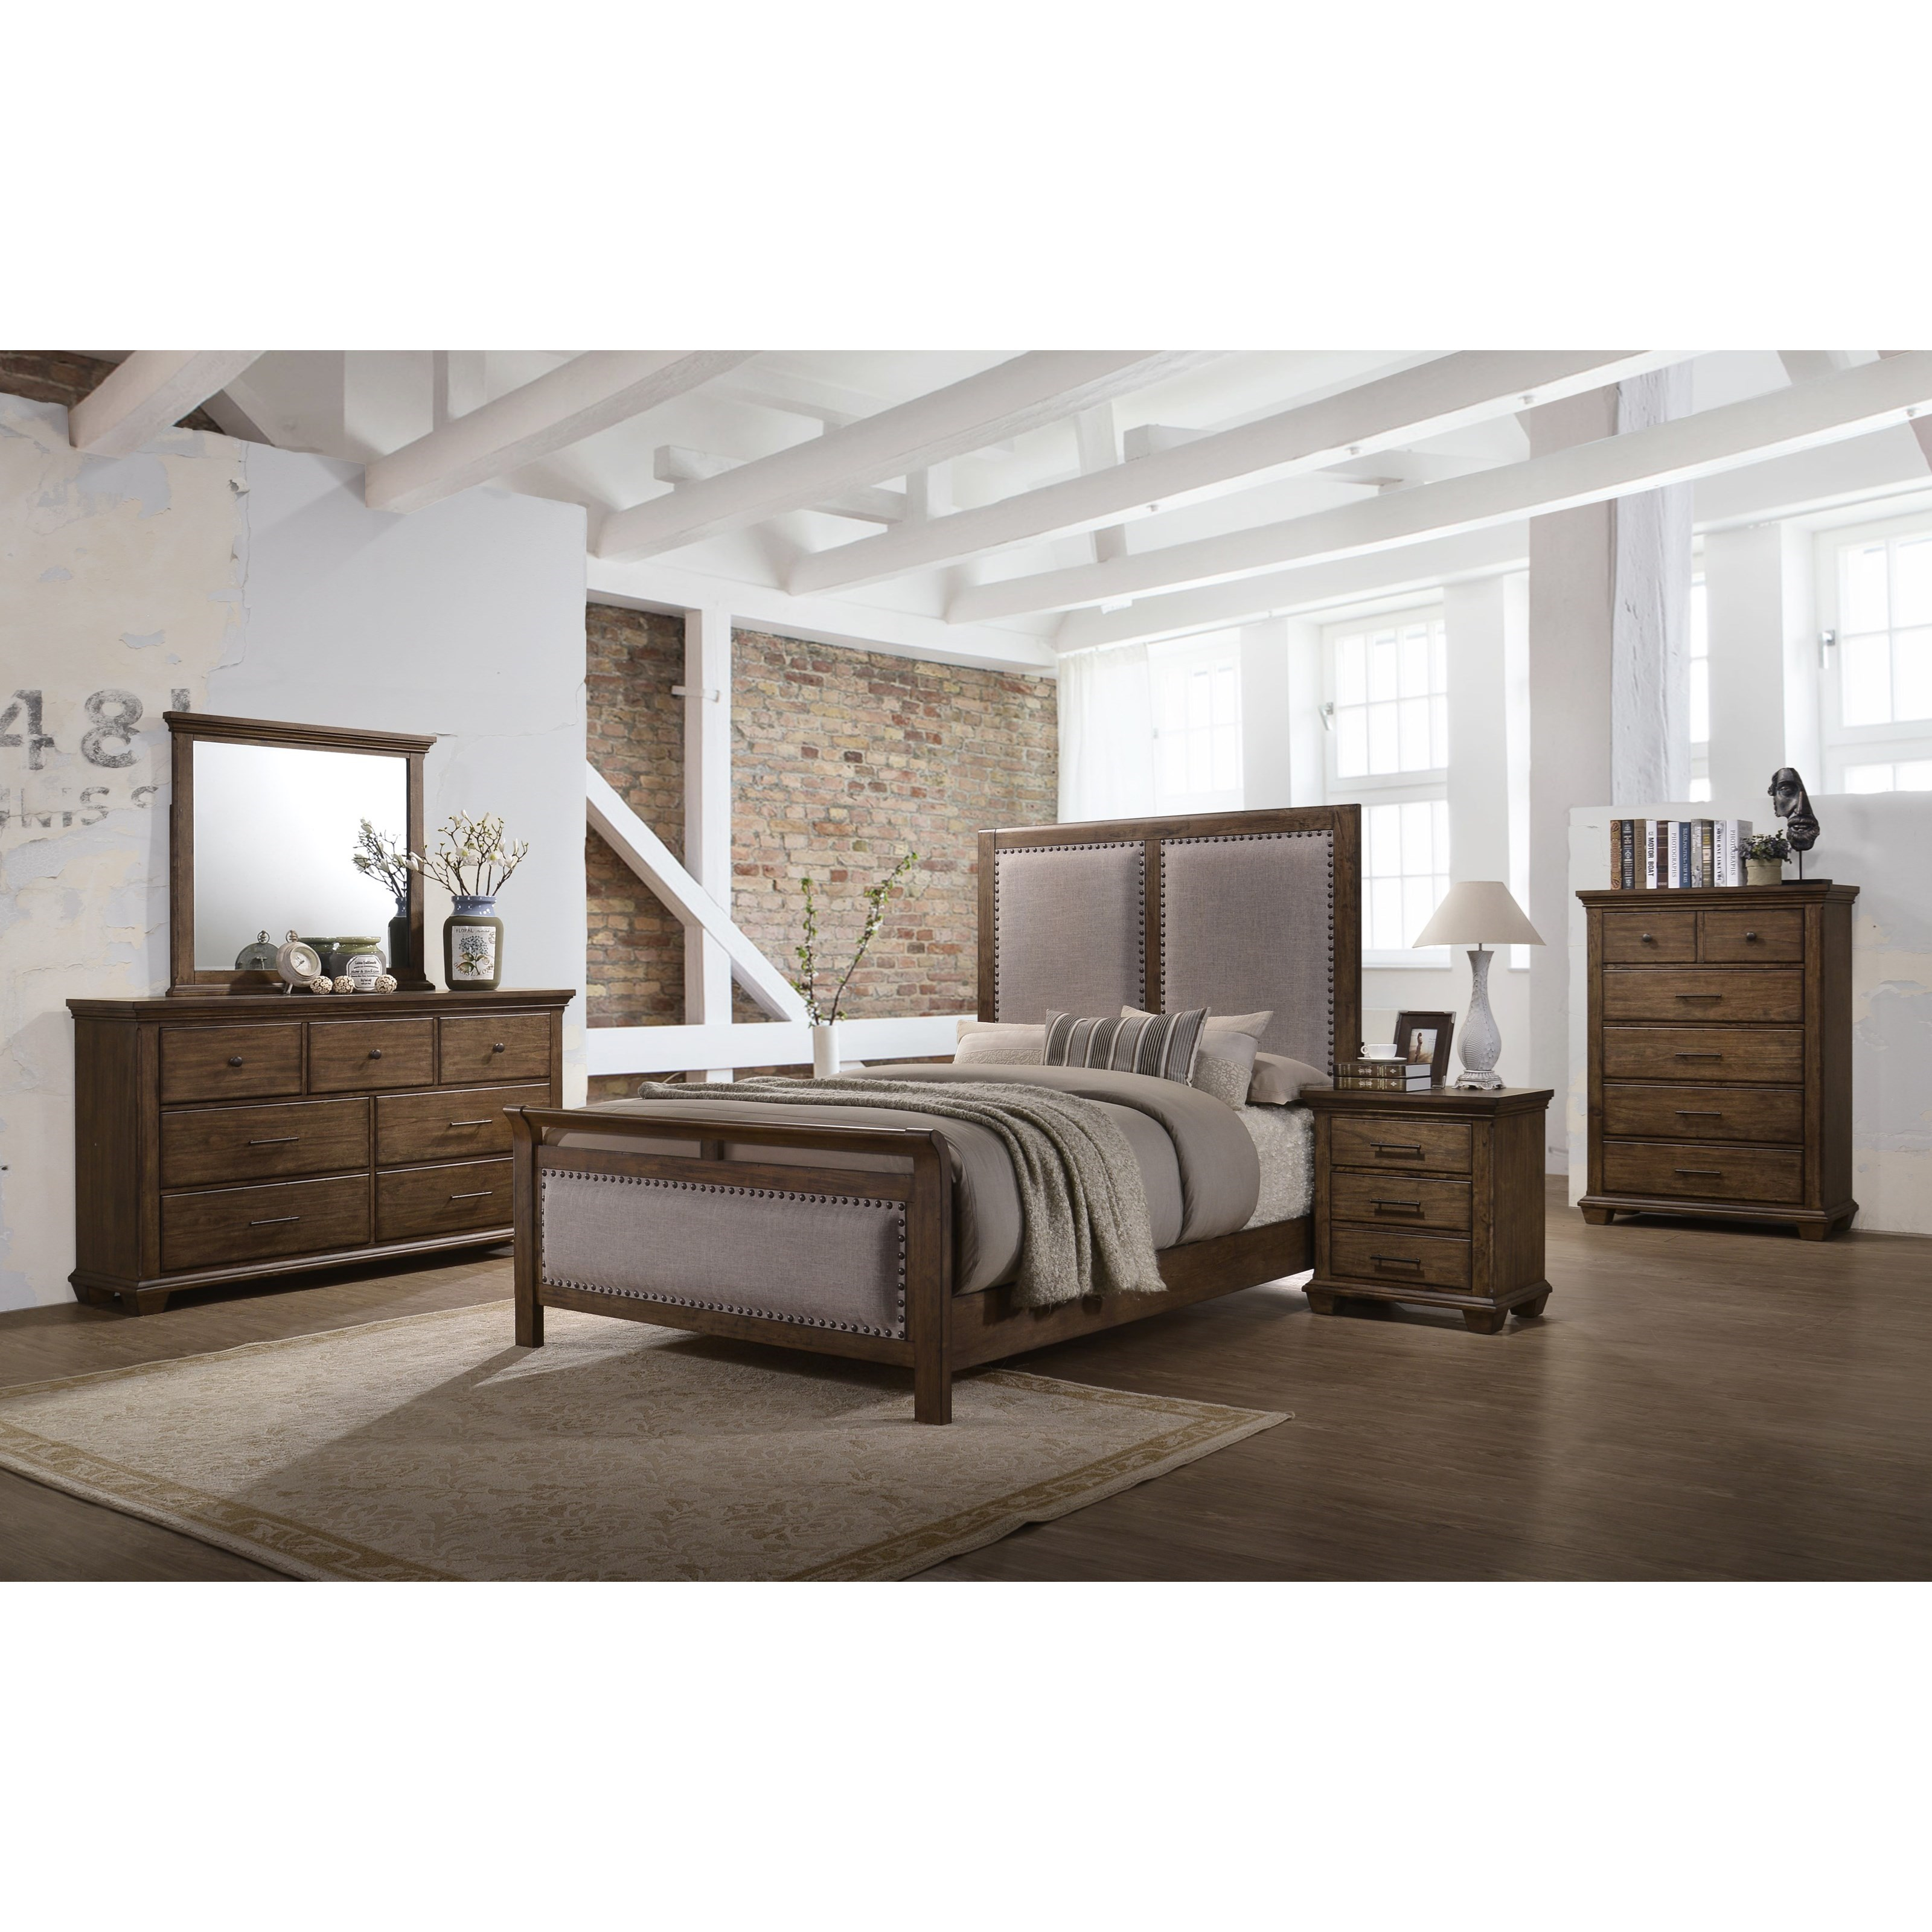 United Furniture Industries Carlton 1040 Queen Bedroom Group - Item Number: 1040 Q Bedroom Group 1